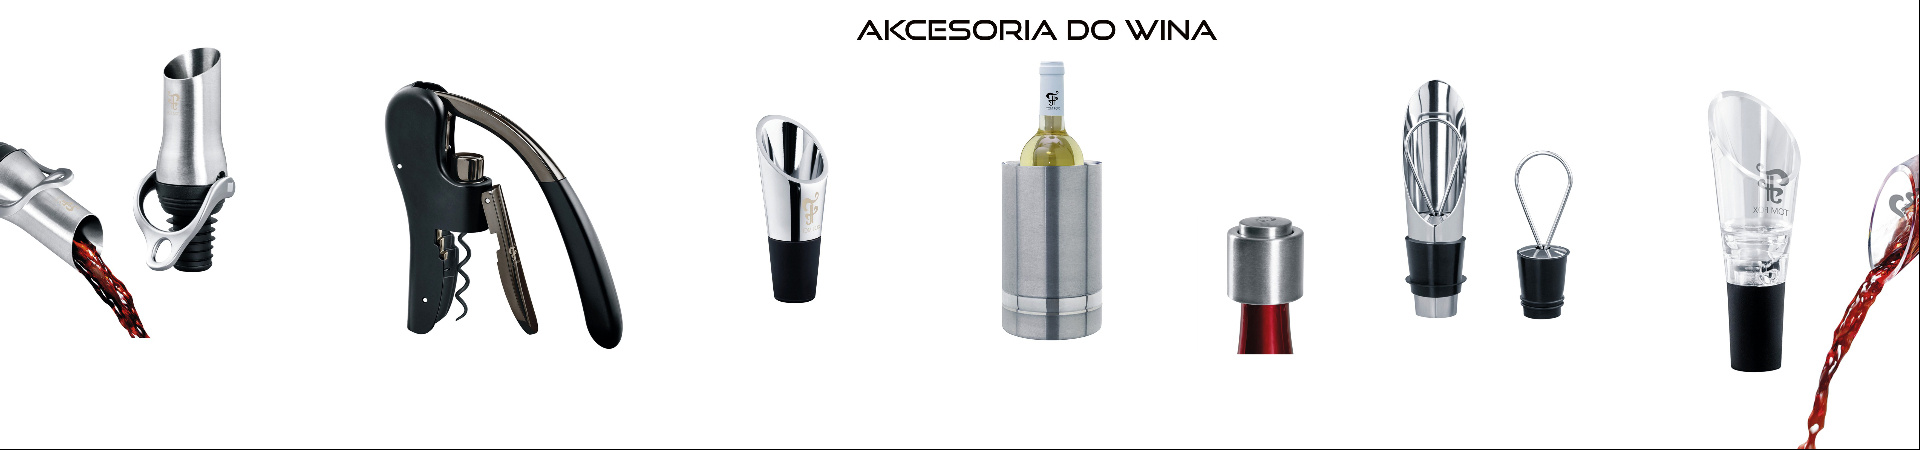 Akcesoria-do-wina-baner